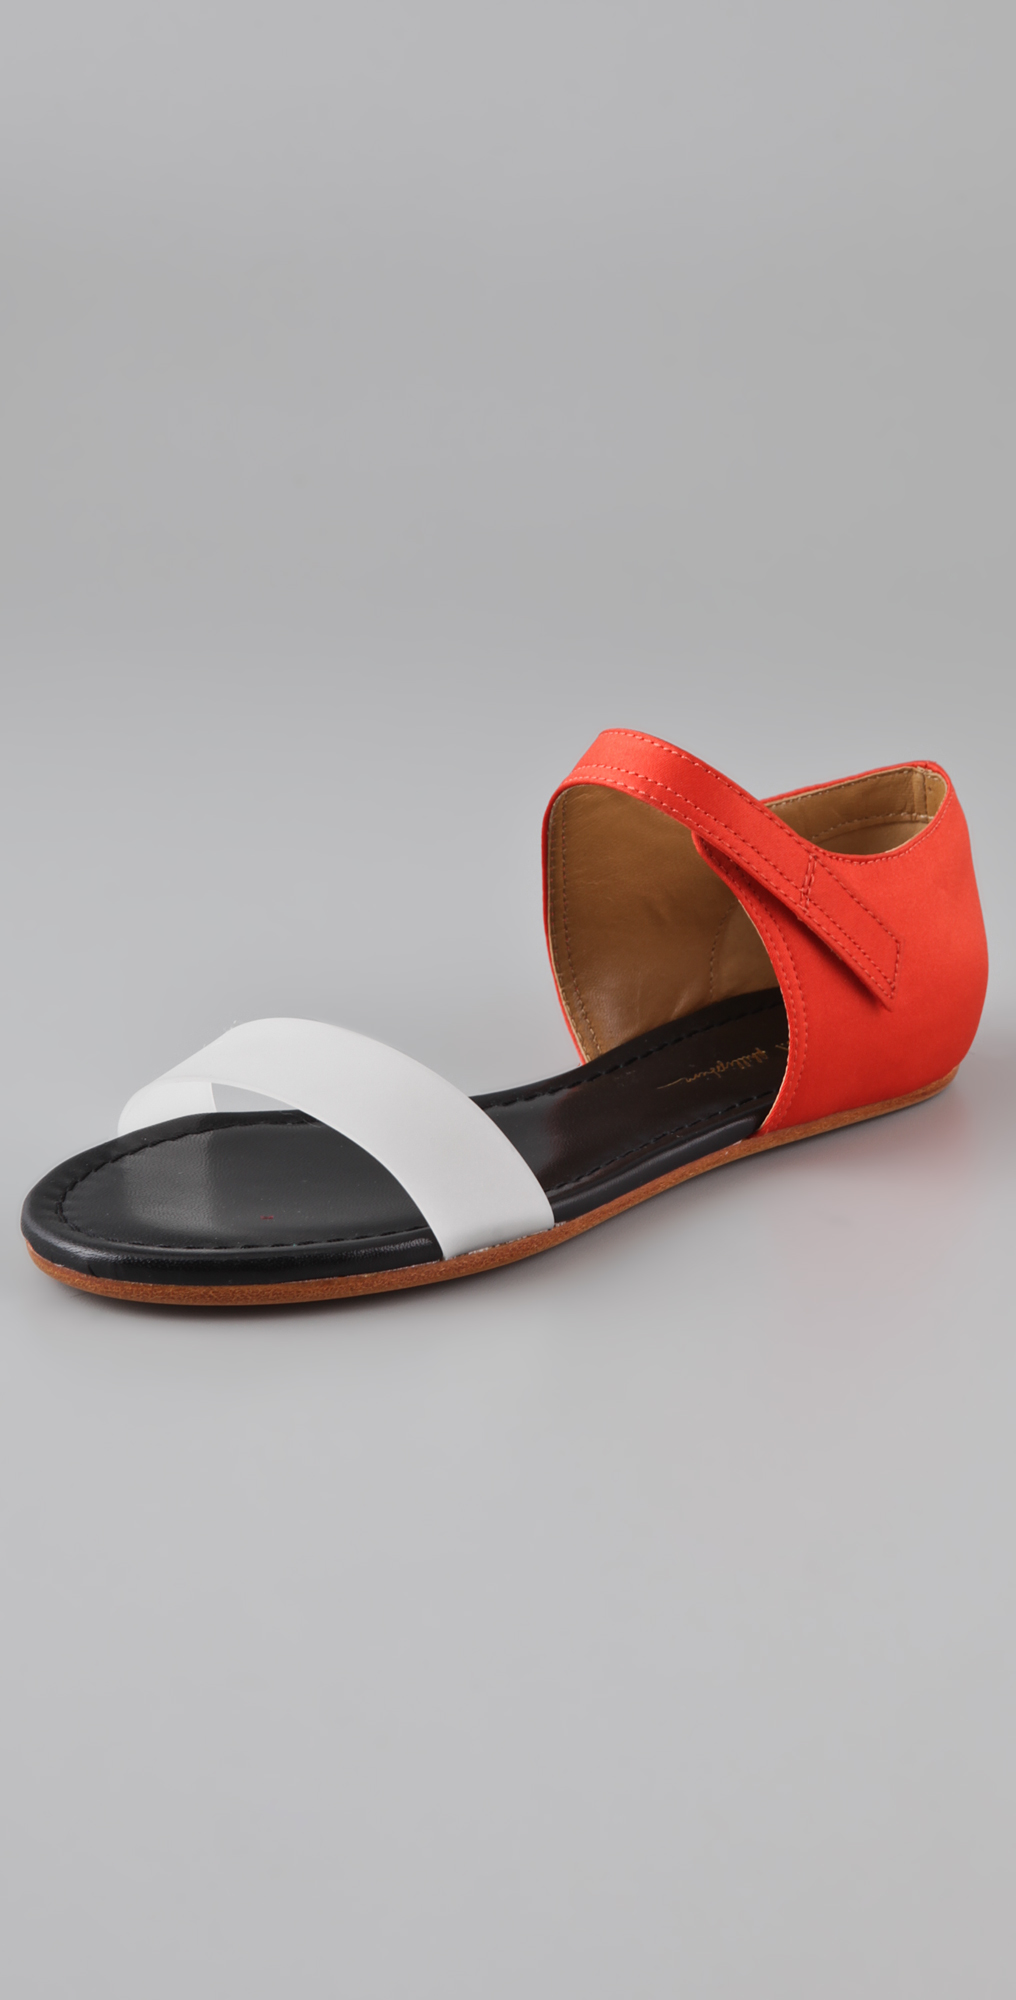 3.1 Phillip Lim Sidibe Flat Sandals